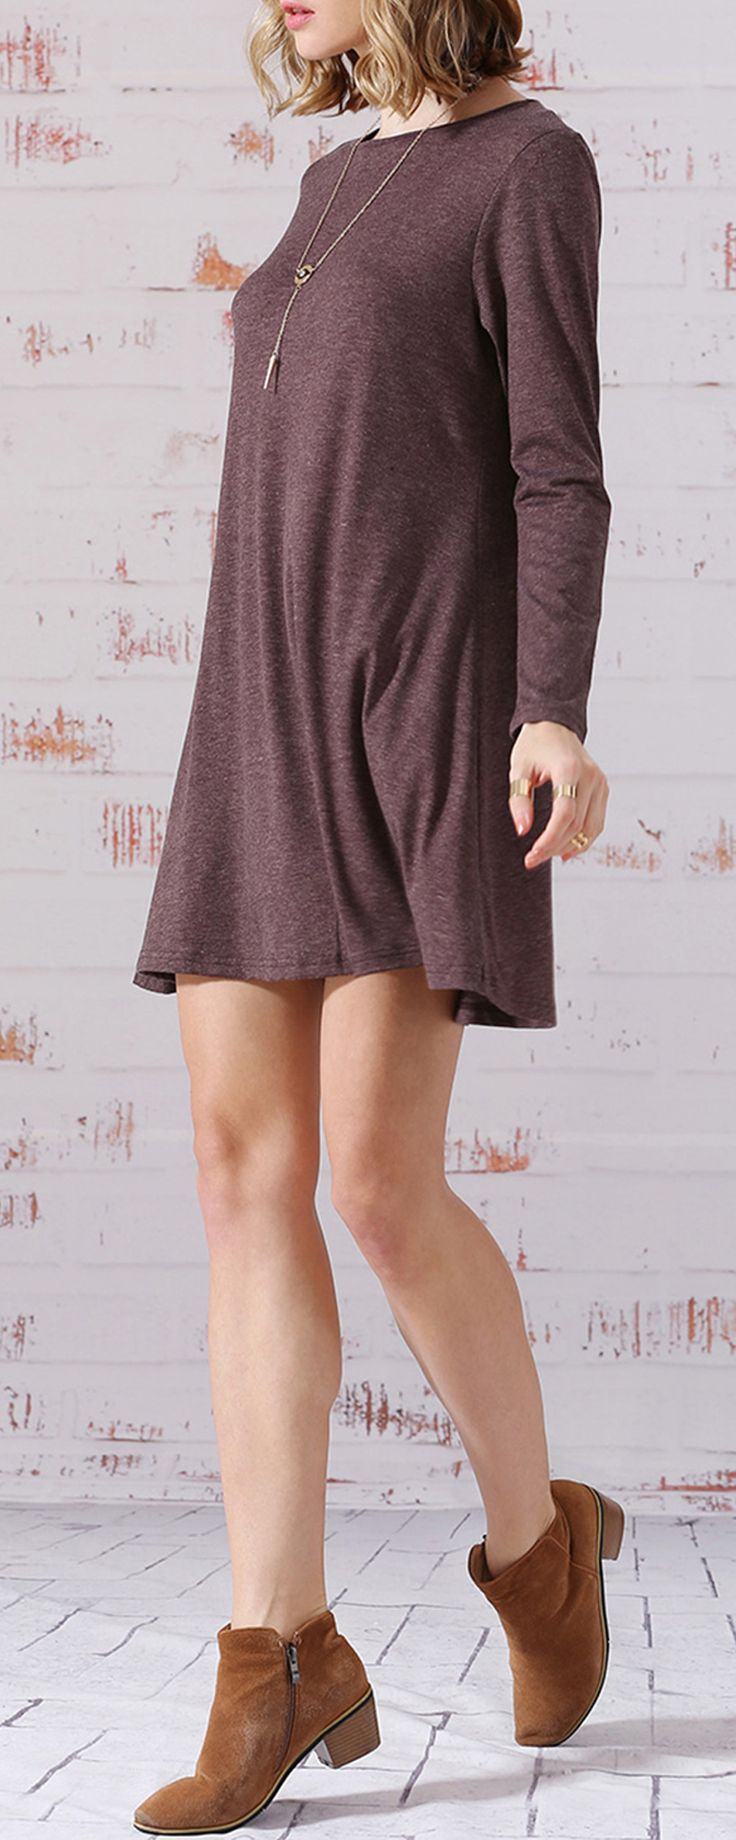 Series of basic thirt  jersey plain dress now :  Coffee Long Sleeve Jumpers Babydoll casual  Dress this time .Just pick variaty colors of these items at shein with a big discount .